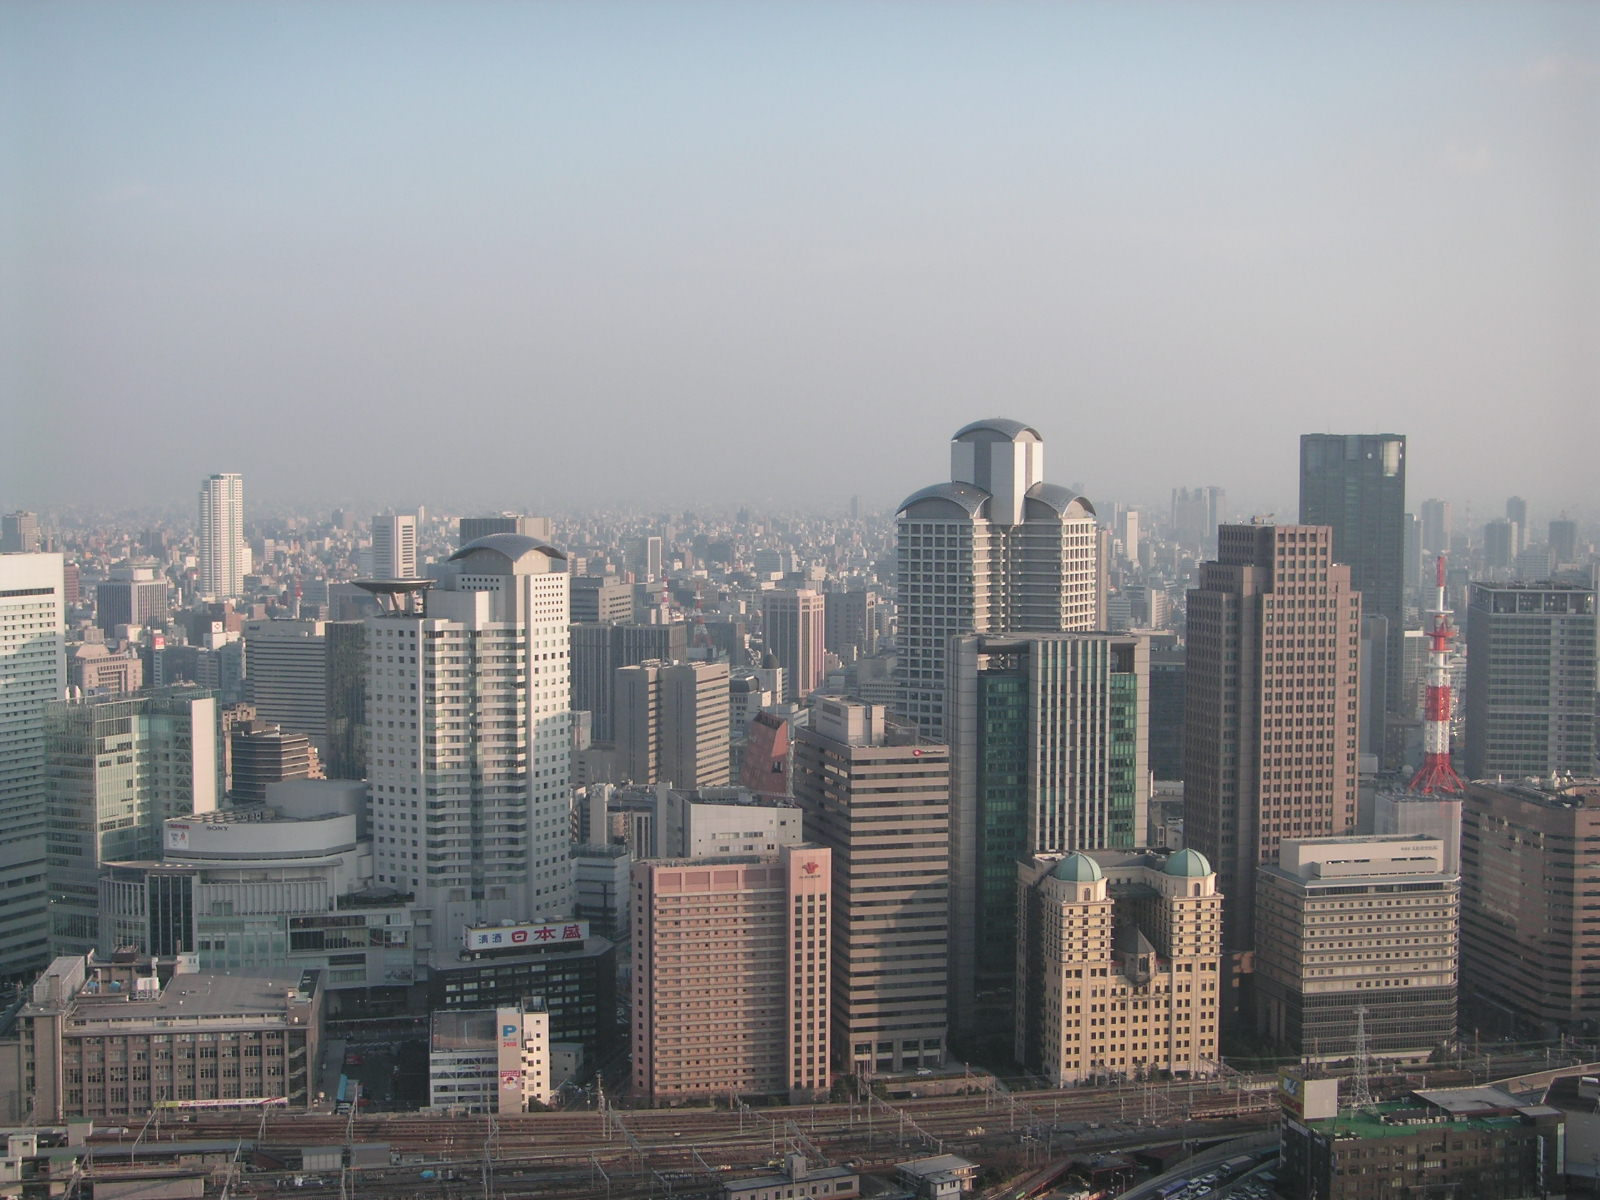 File:Osaka city view.JPG